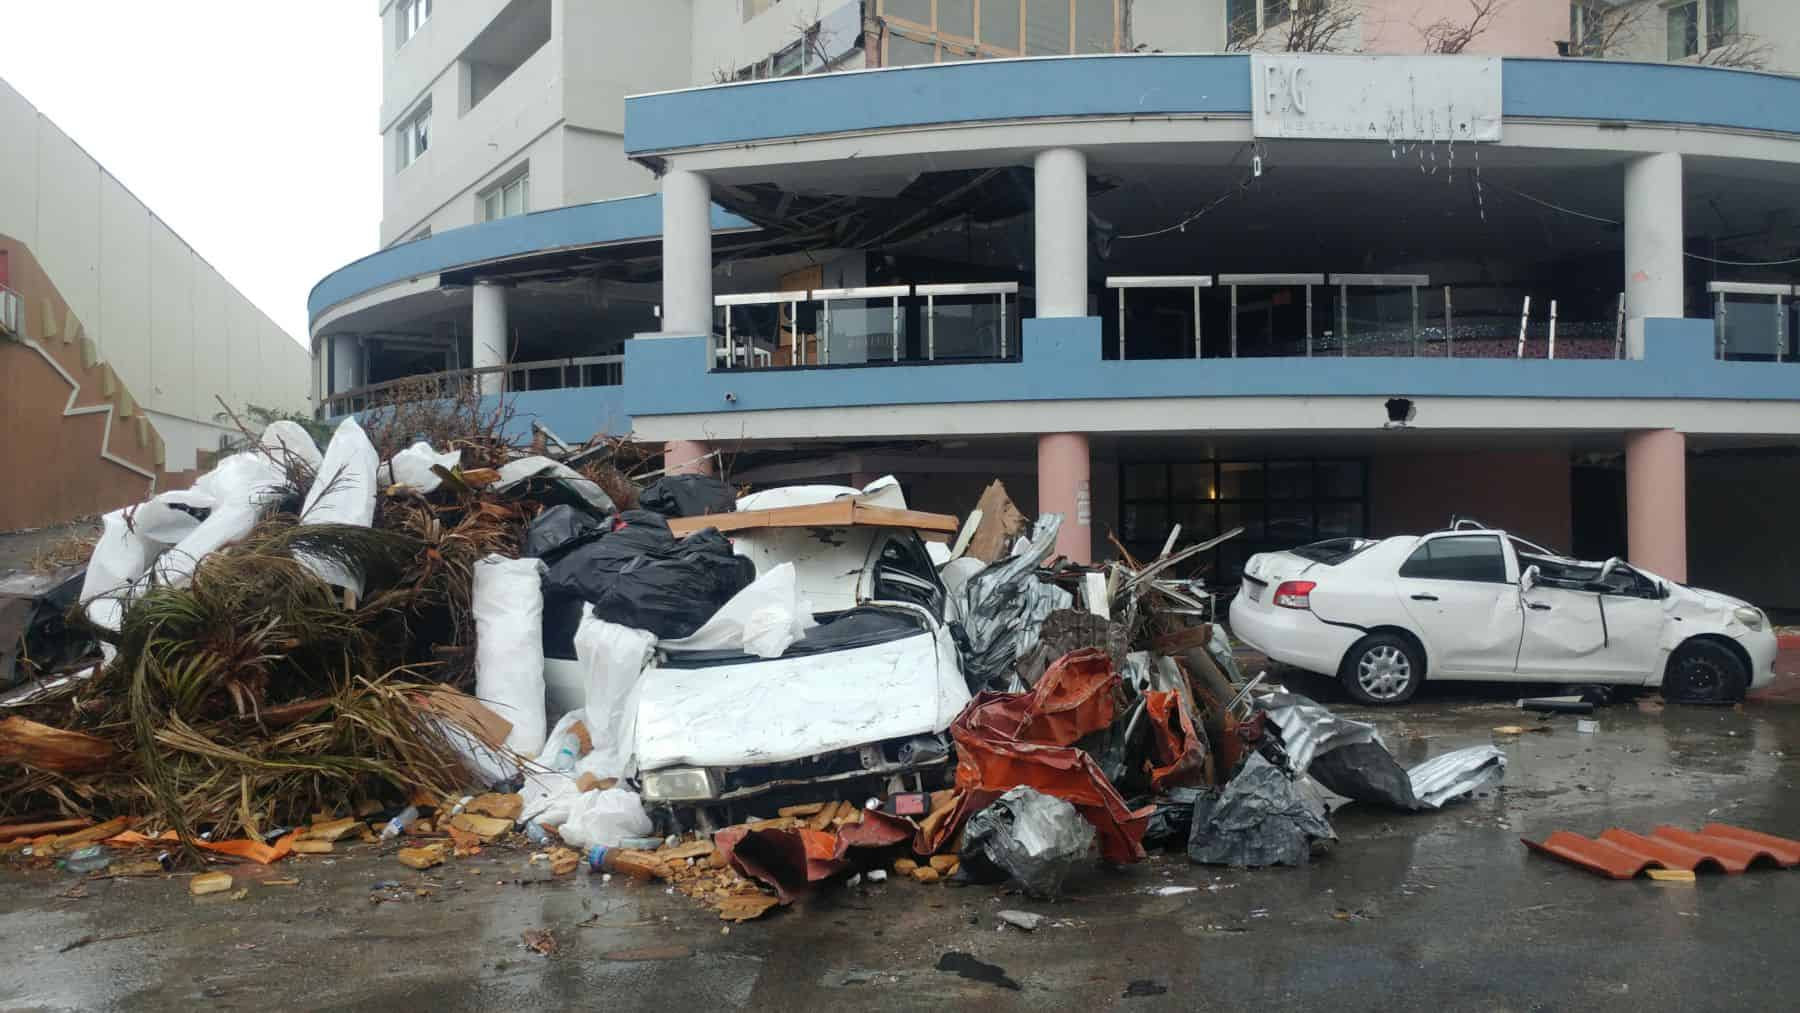 The devastation on St. Martin was extensive. Our team members report that houses upon houses were badly damaged. Roofs were blown off. Irma's Category-5 winds lifted cars and flung them into trees.